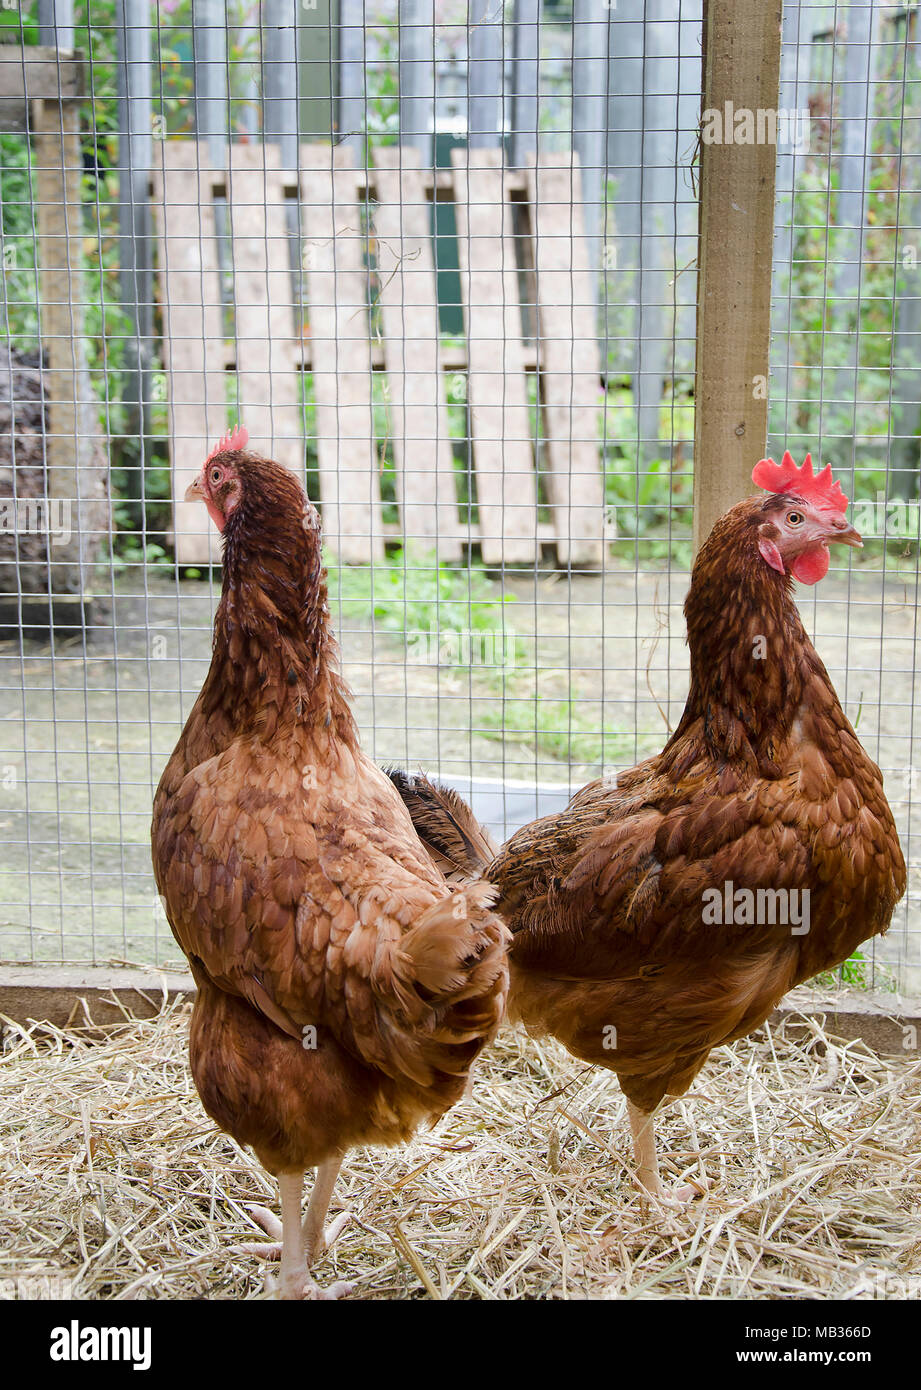 GLASGOW, SCOTLAND - AUGUST 23 2013: Two ISA Brown hens standing next to each other. - Stock Image